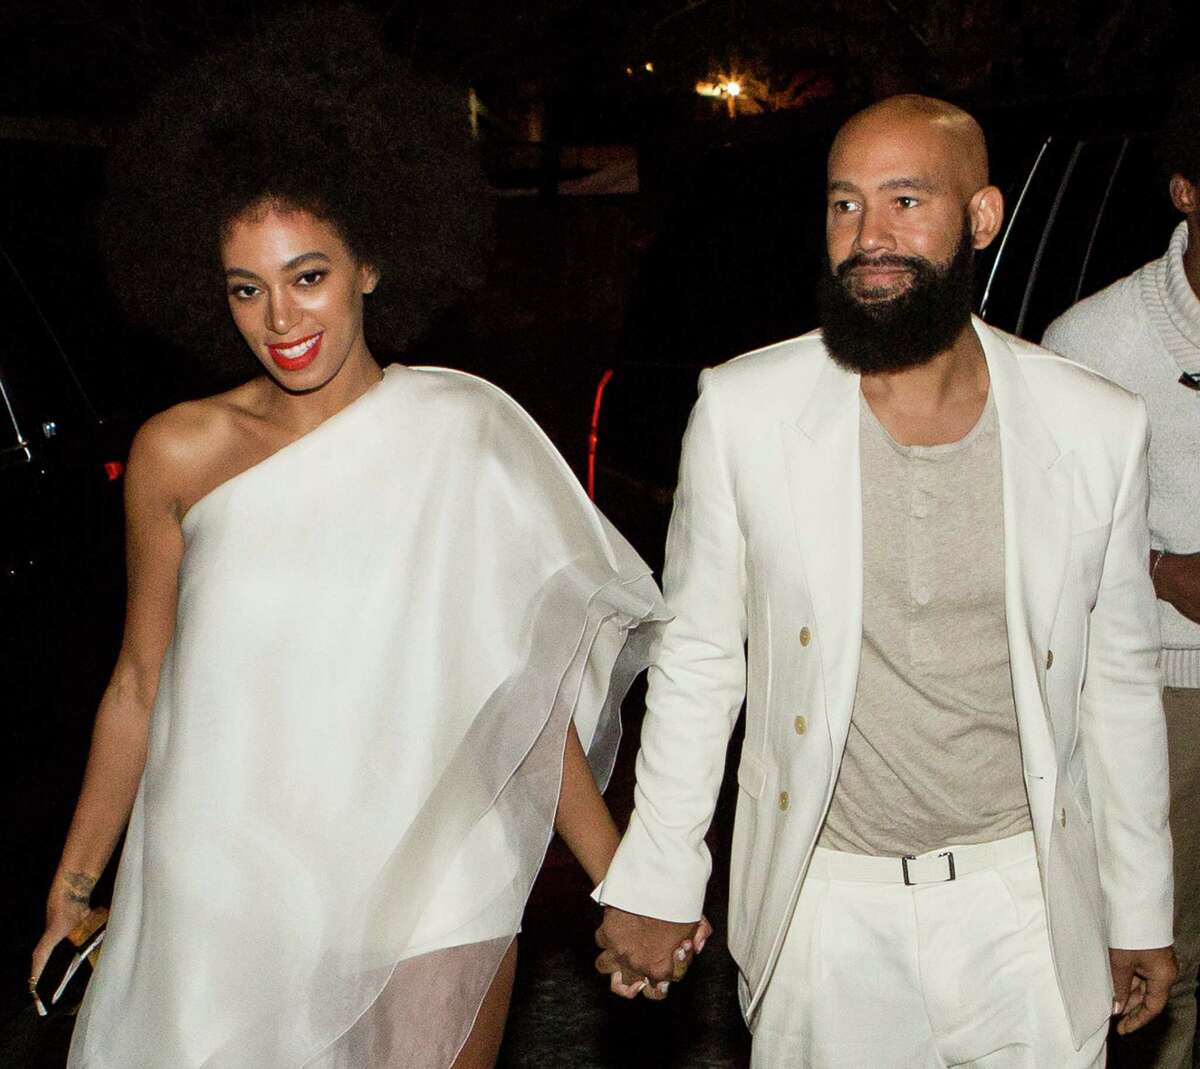 Musician Solange Knowles (wearing Stephane Rolland with Stuart Weitzman shoes and a Lee Savage clutch) and her fiancee, music video director Alan Ferguson (wearing Costume National with an H&M shirt and Maison Martin Margiela shoes), arrive for their rehearsal dinner at the Felicity Street Methodist Church on November 15, 2014 in New Orleans, Louisiana. (Photo by Josh Brasted/WireImage)AP story: Solange Knowles weds video director